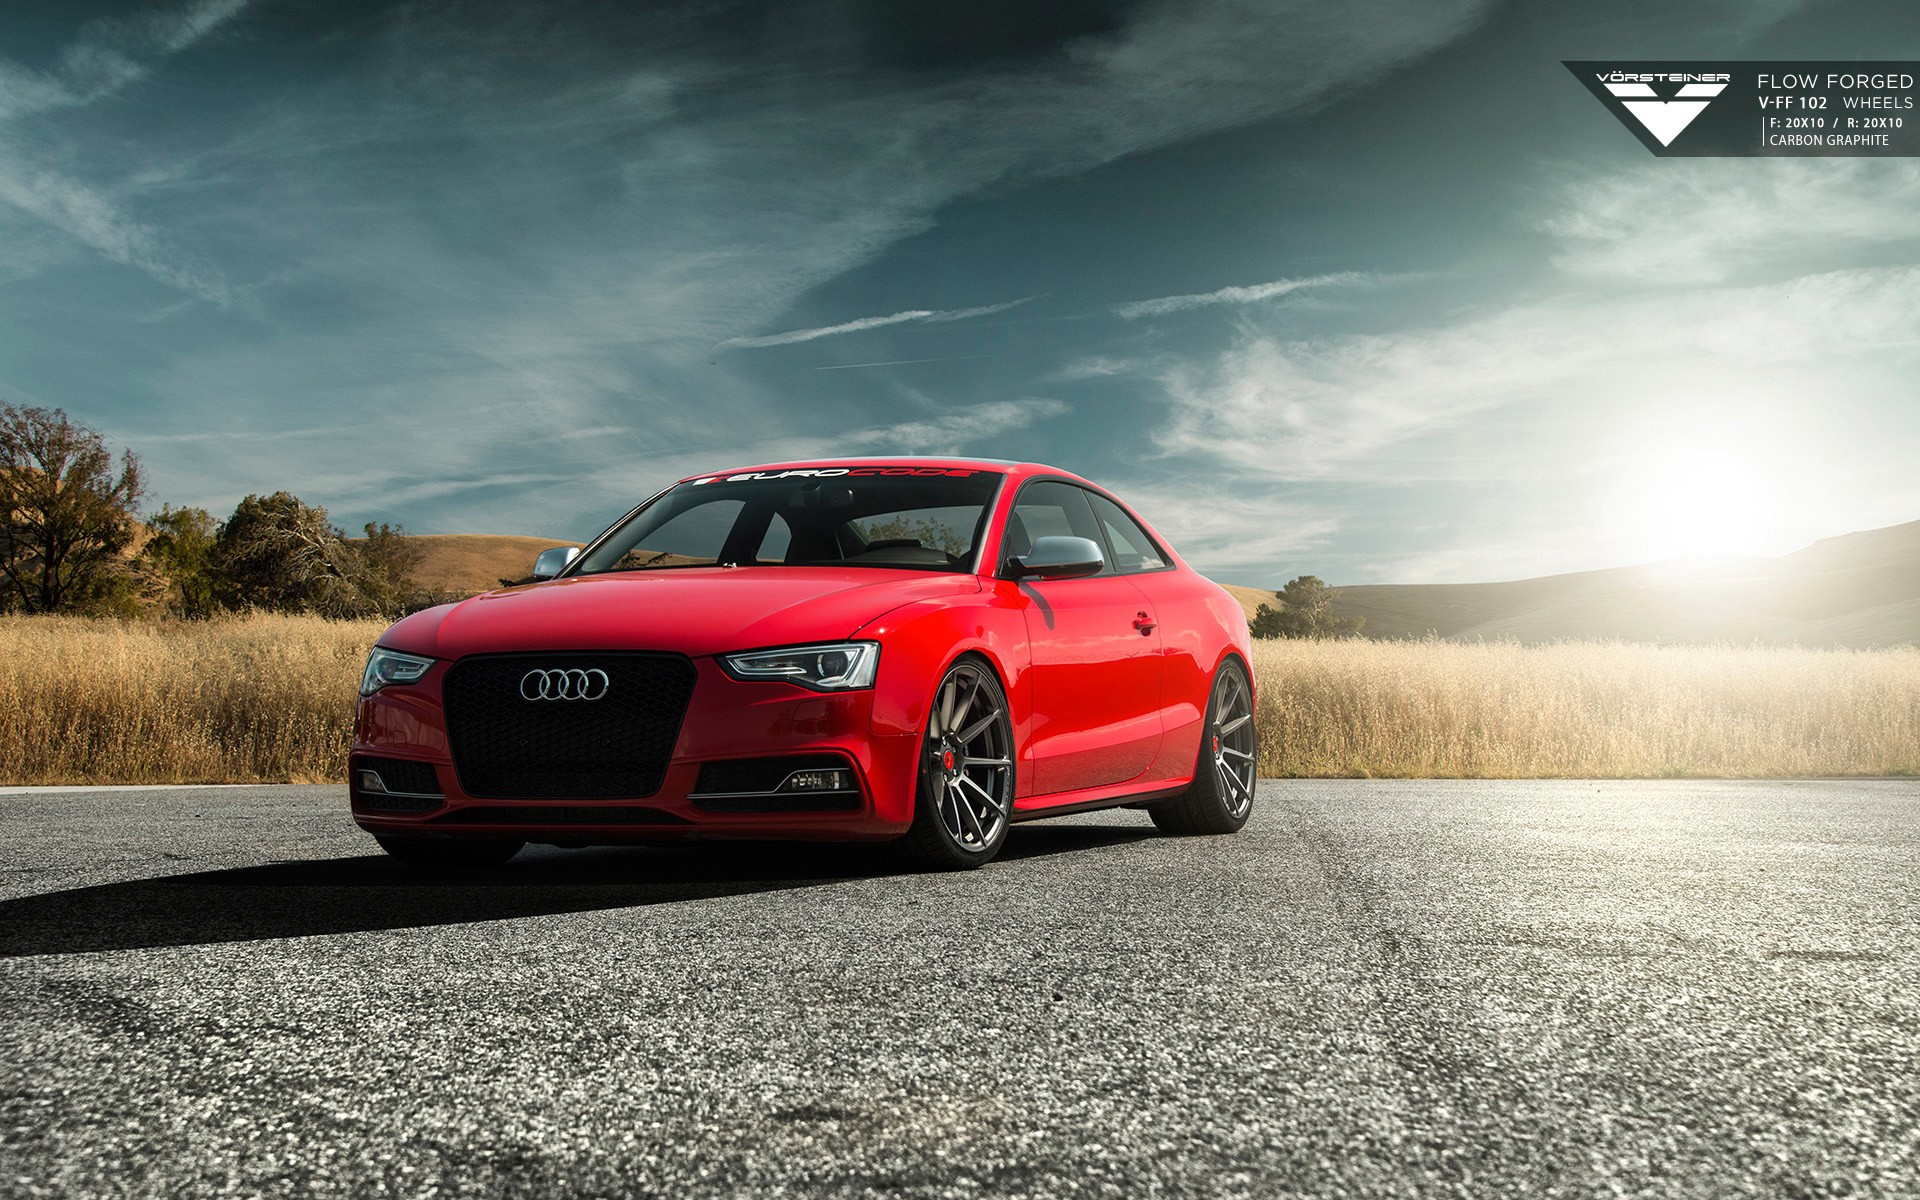 2015 vorsteiner audi s5 v ff 2 wallpaper hd car wallpapers id 5499 - Car wallpapers for galaxy s5 ...